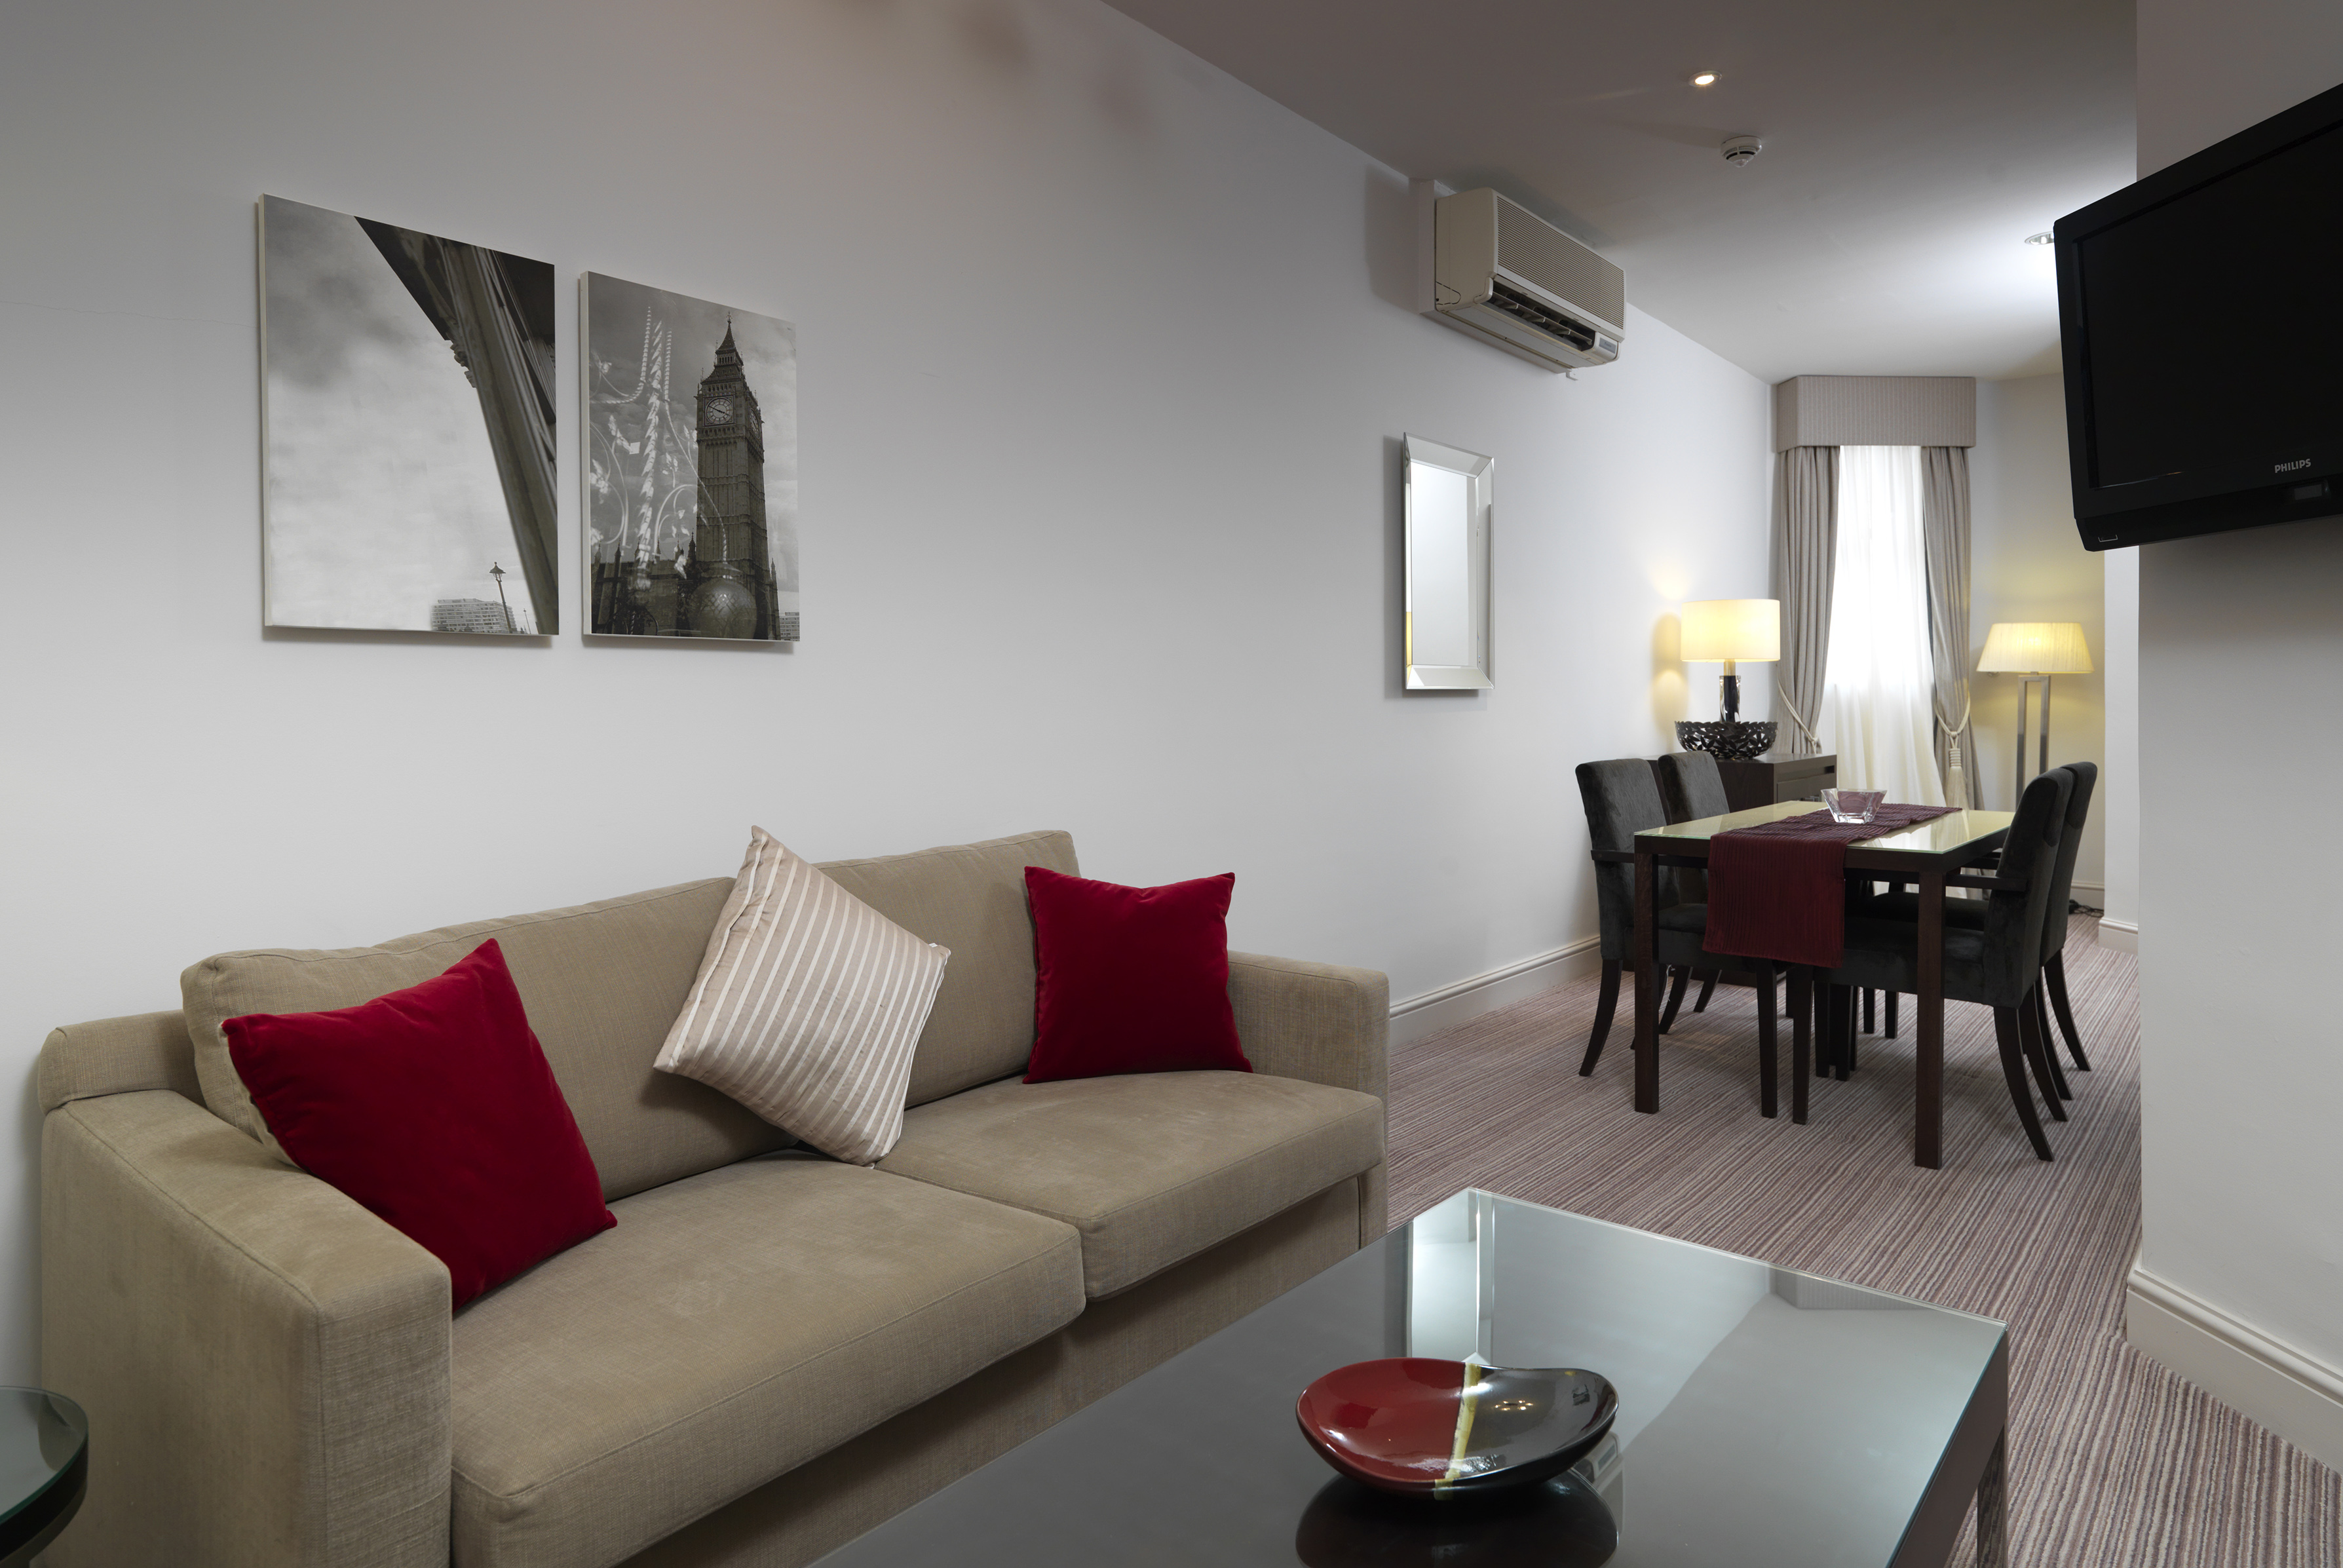 https://www.hotelsbyday.com/_data/default-hotel_image/0/4293/hi-h0bkr-27087790-thistle-london-hotel-bedrooms-junior-suite-lounge.jpg